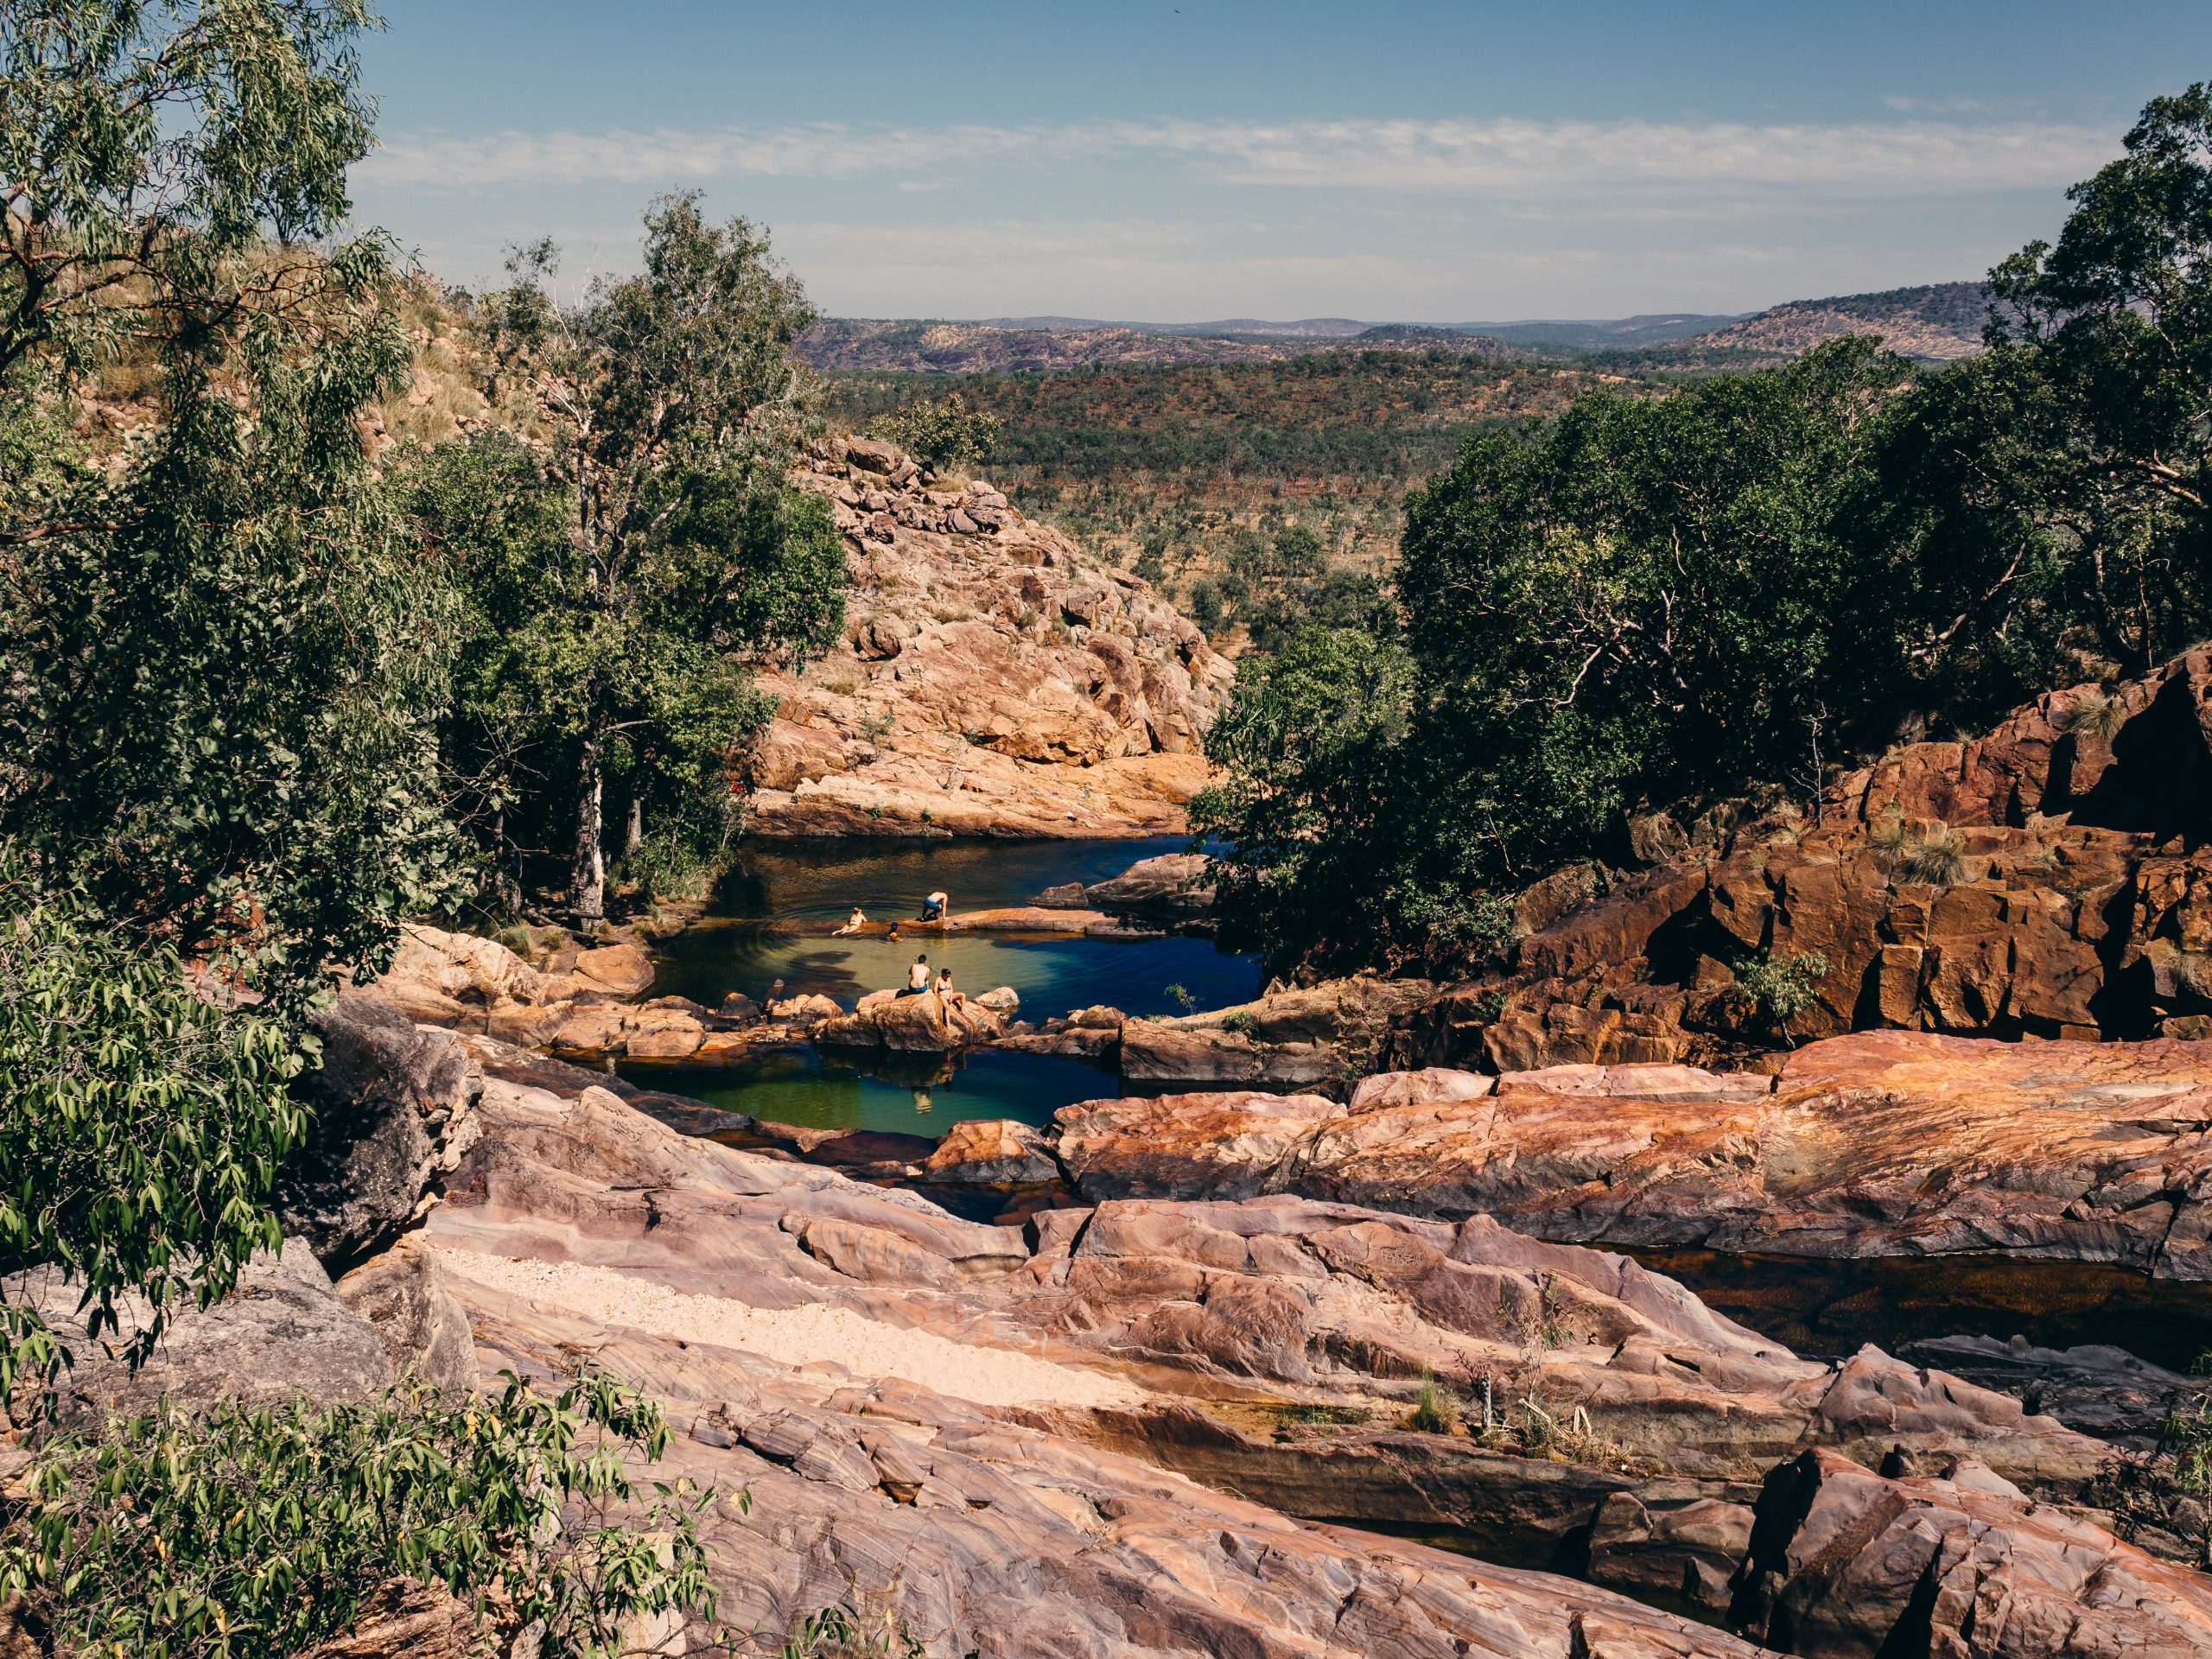 Kakadu, Arnhem Land & Gunlom Falls Adventure | Nature's infinity pool at Gunlom, Kakadu National Park, Northern Territory